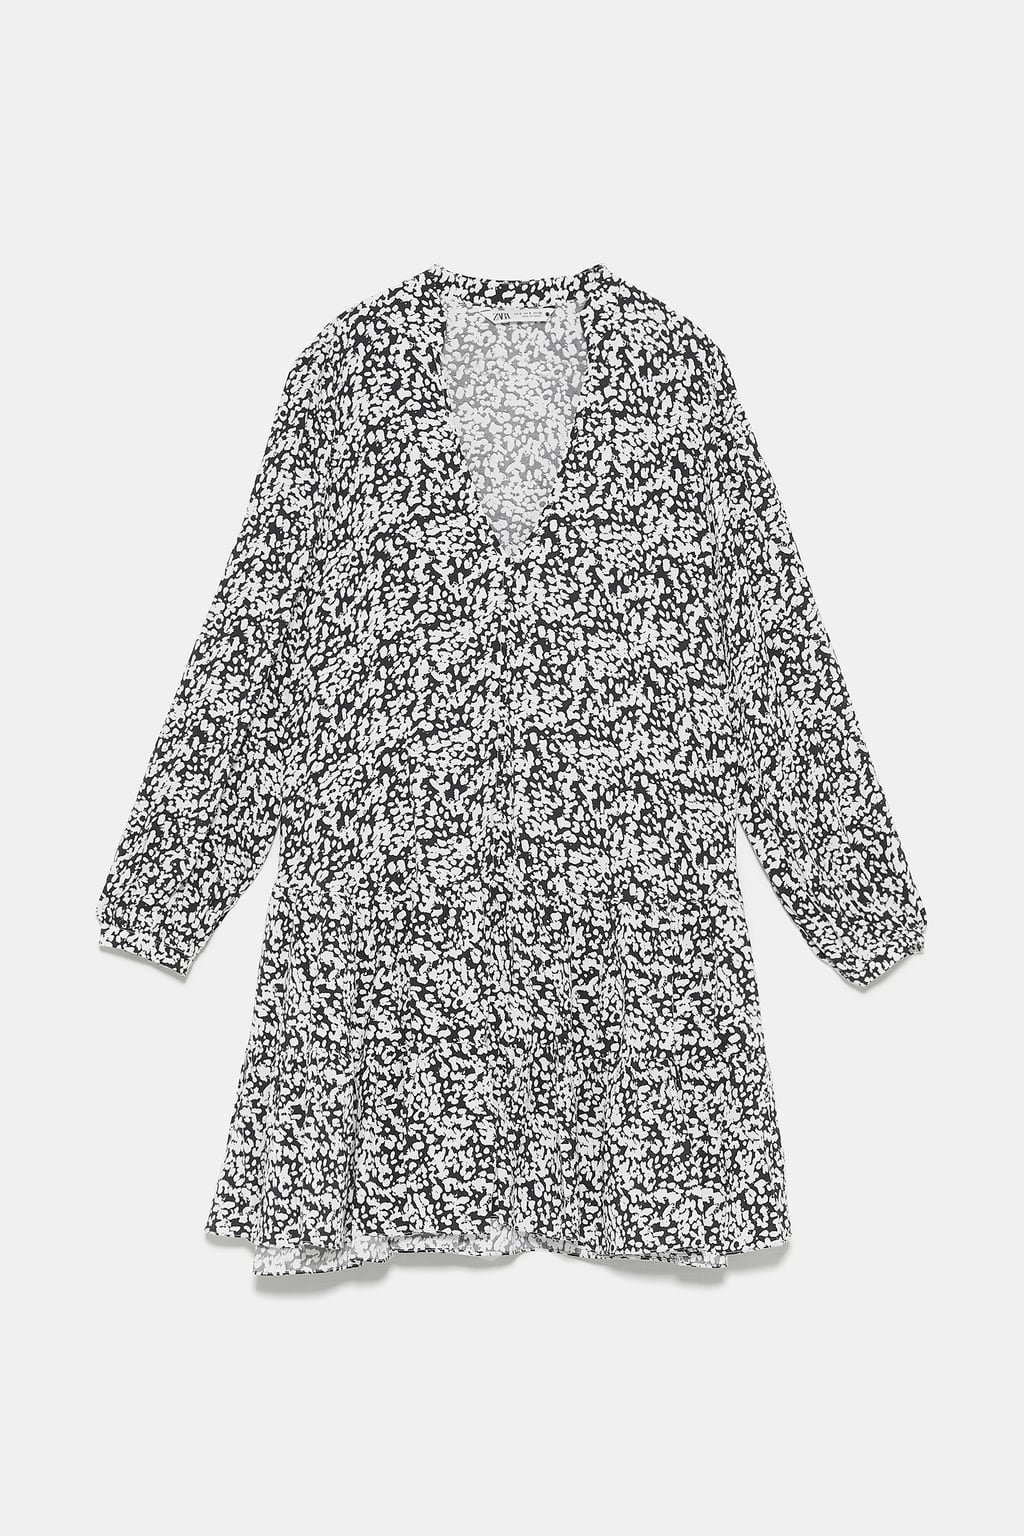 PRINT DRESS - View all-DRESSES-WOMAN | ZARA United States white